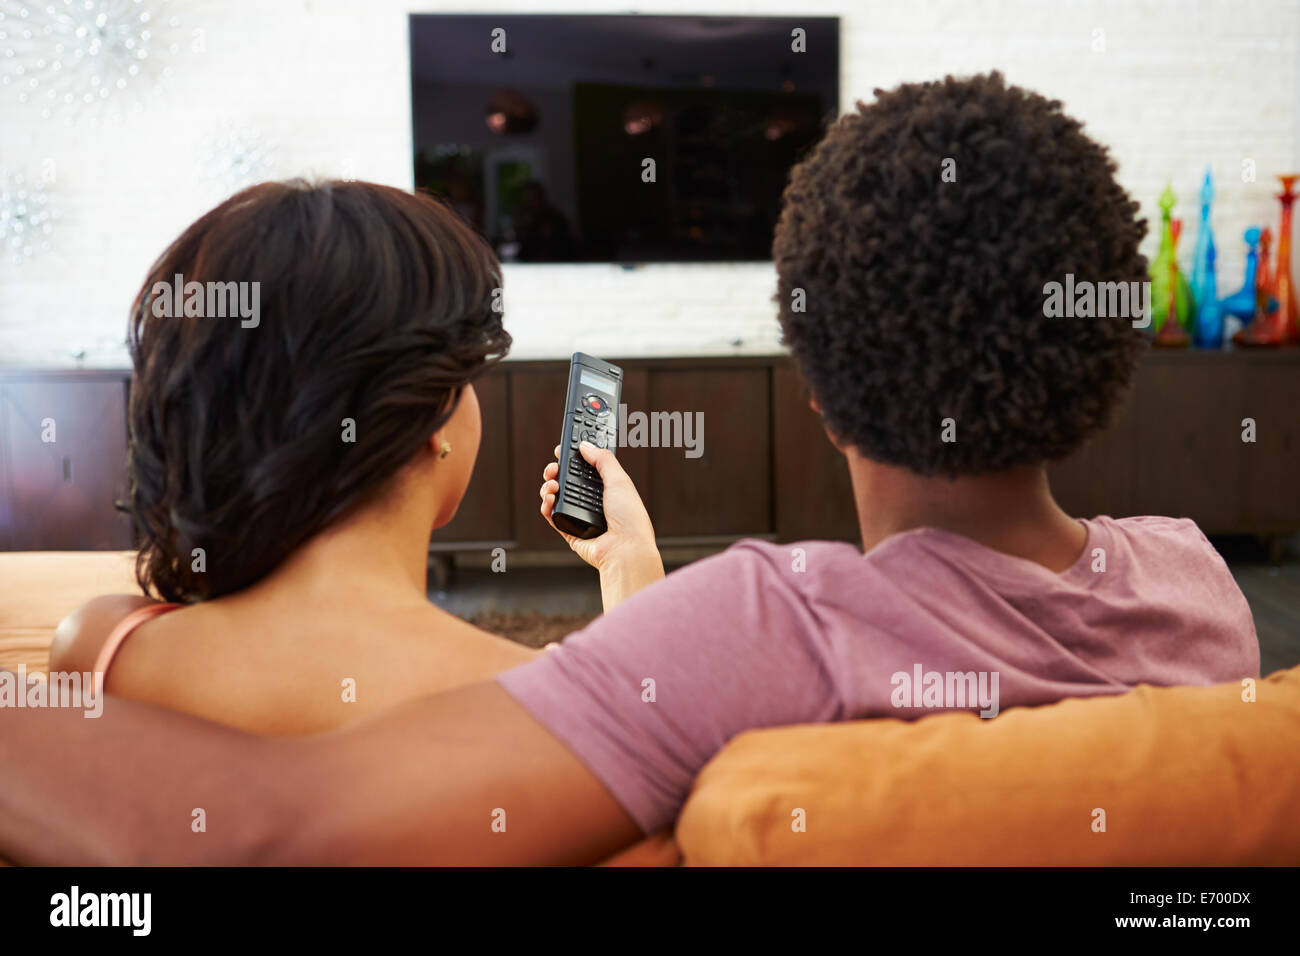 Rear View Of Couple Sitting On Sofa Watching TV Together - Stock Image